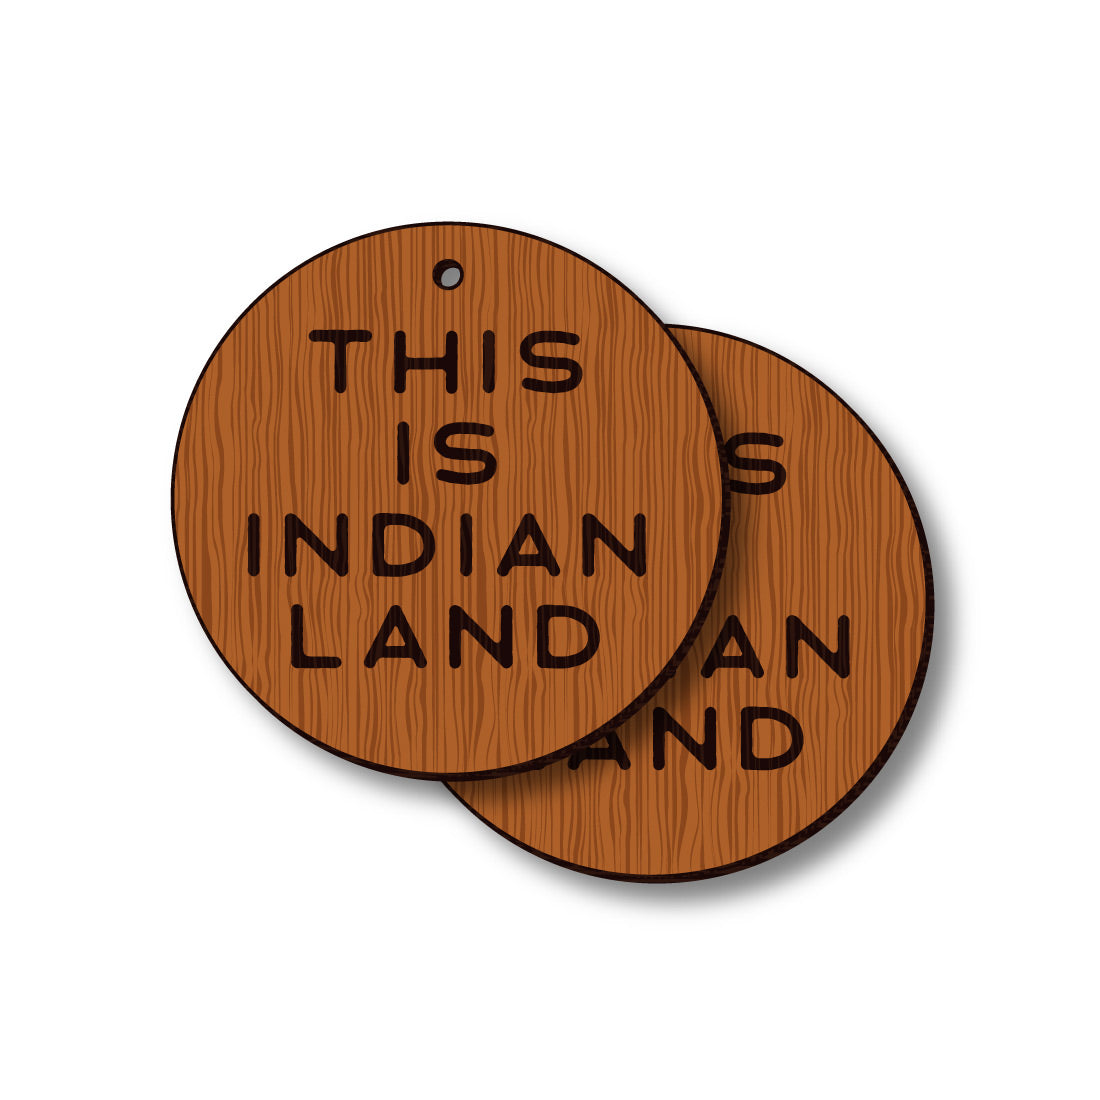 David Bernie Shop Laser Cut Cherry Wood Earrings This is Indian Land II